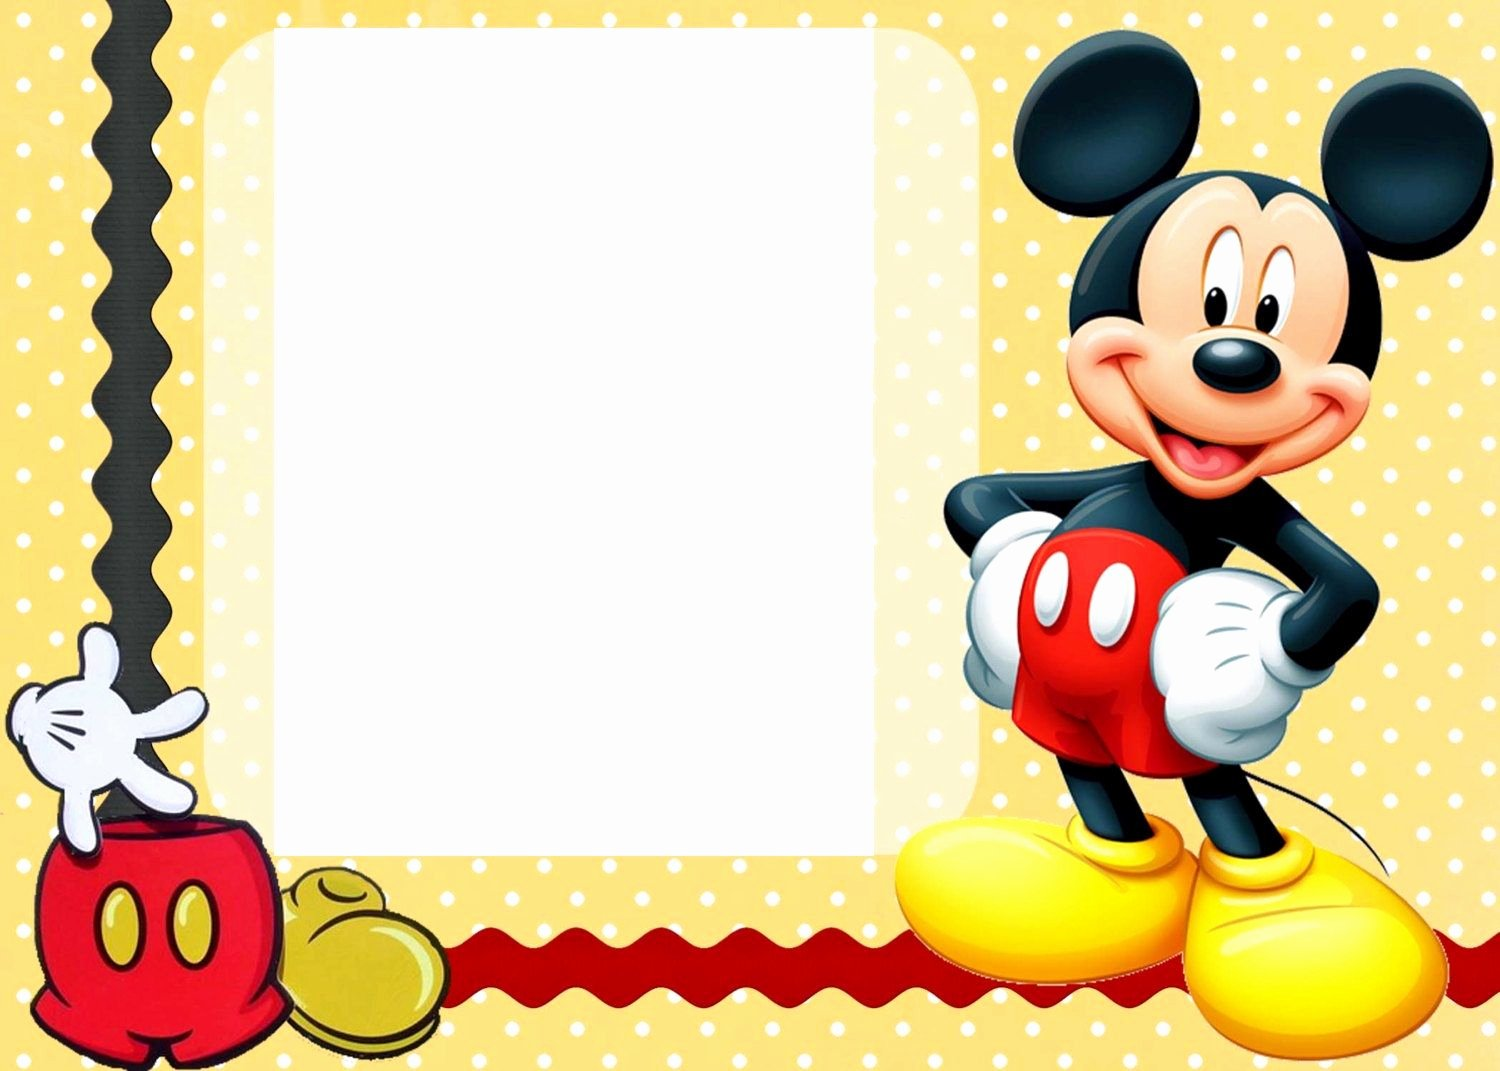 Mickey Mouse Invitations Online Awesome 25 Incredible Mickey Mouse Birthday Invitations